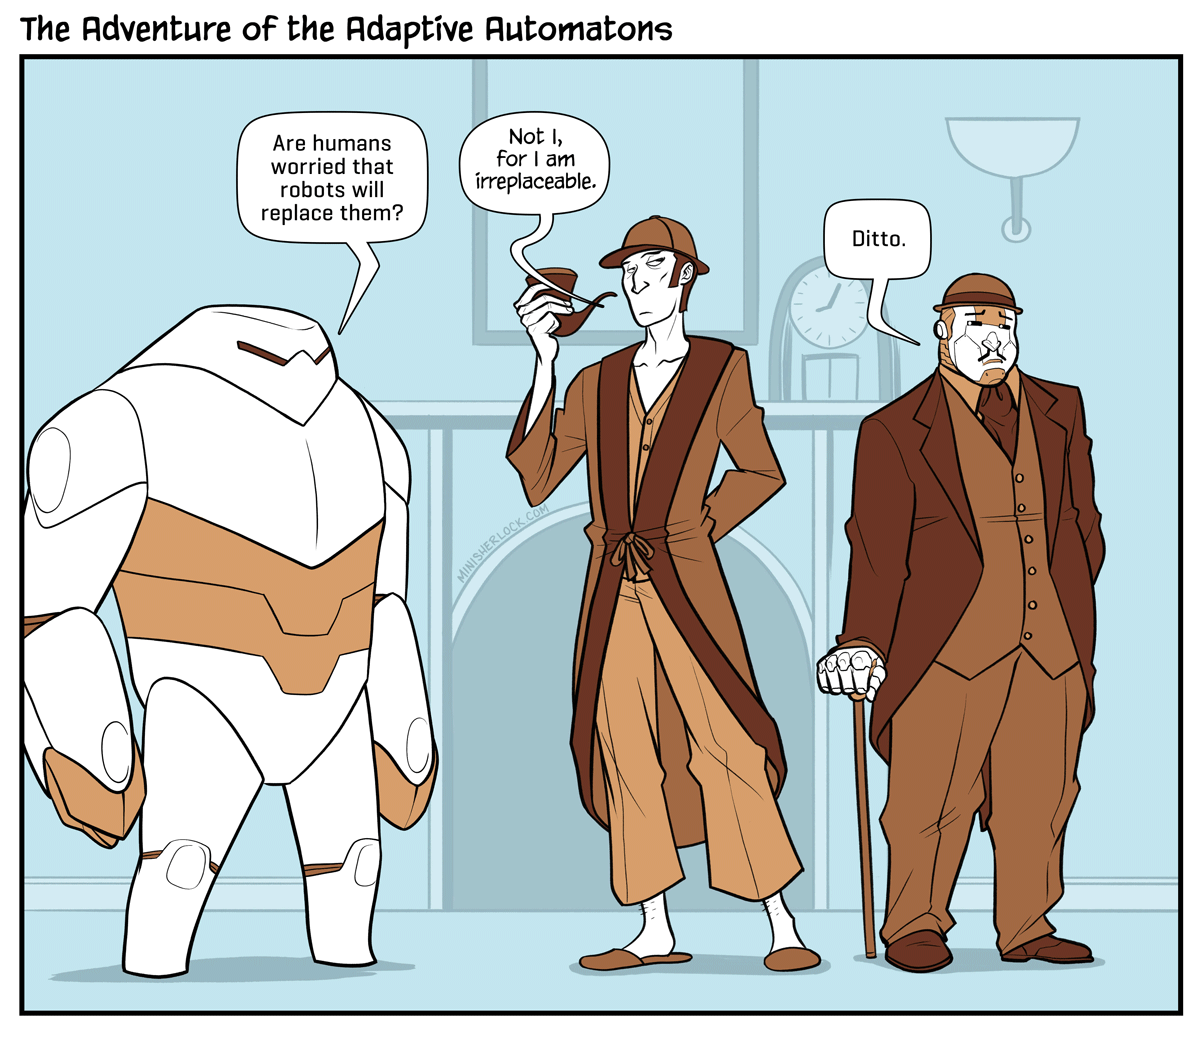 The Adventure of the Adaptive Automatons